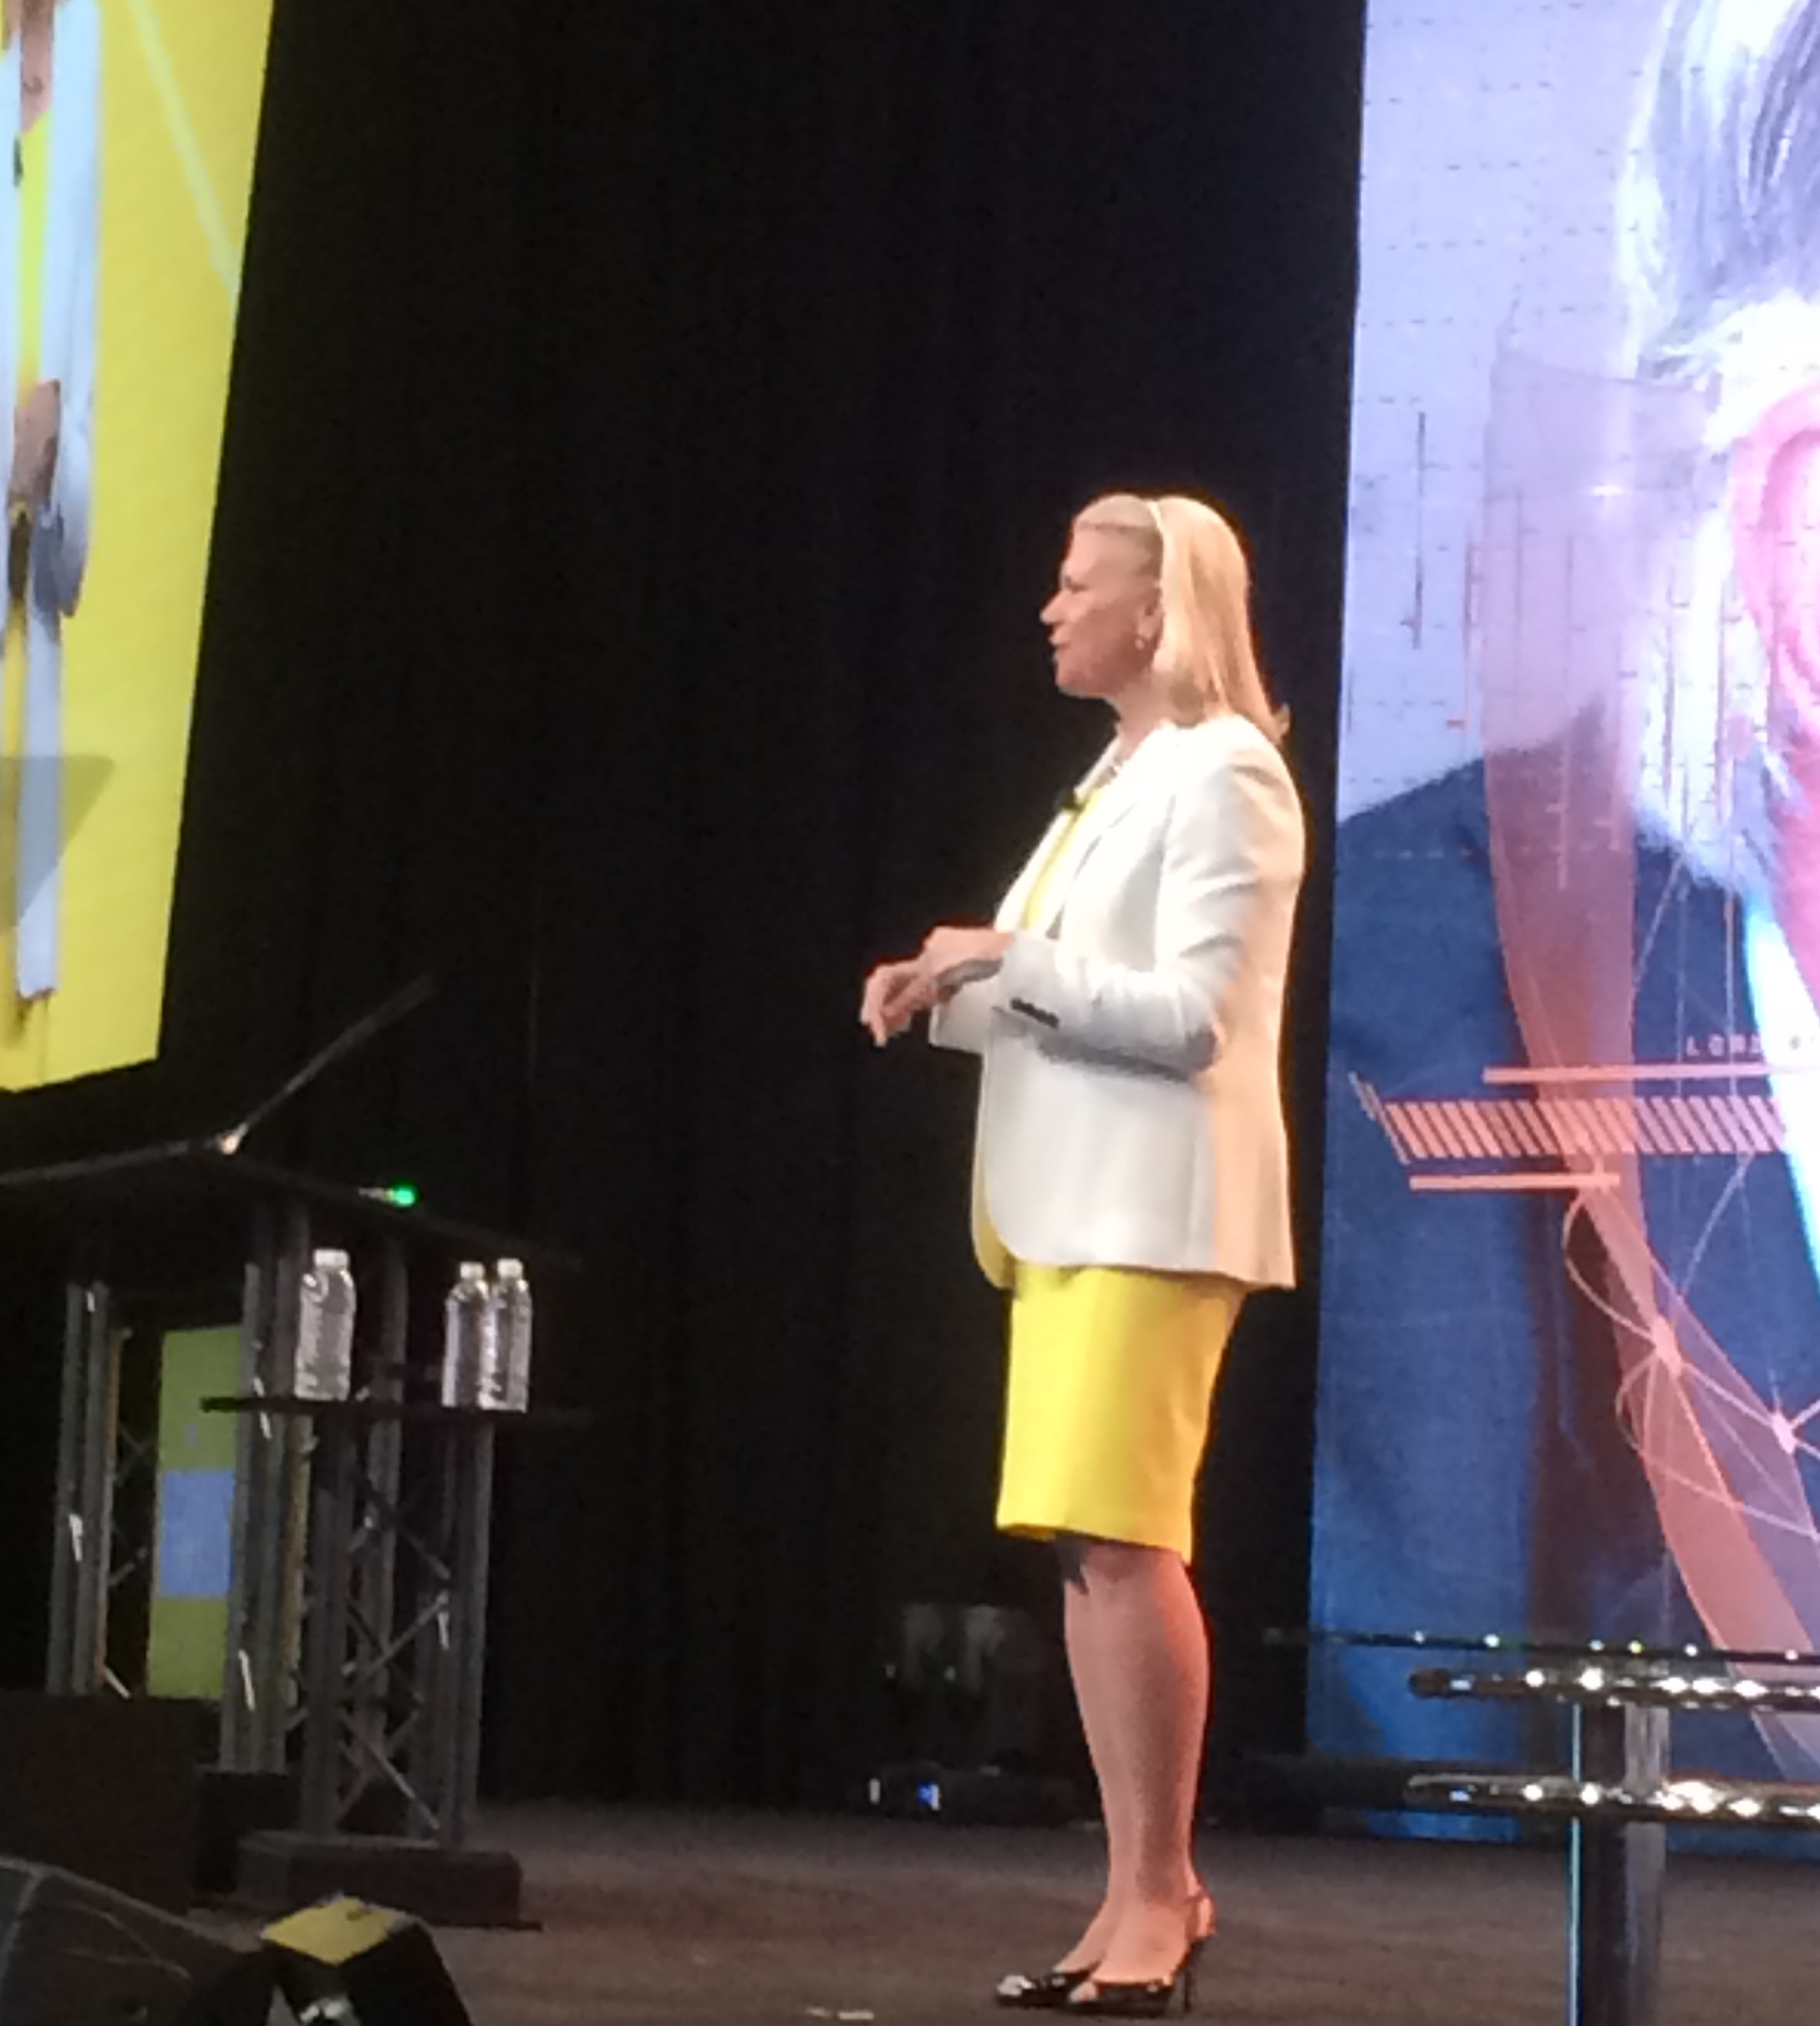 IBM CEO Ginni Rometty speaking at HIMSS 2017 in Orlando, Fla. Photo: Daniel Bowman